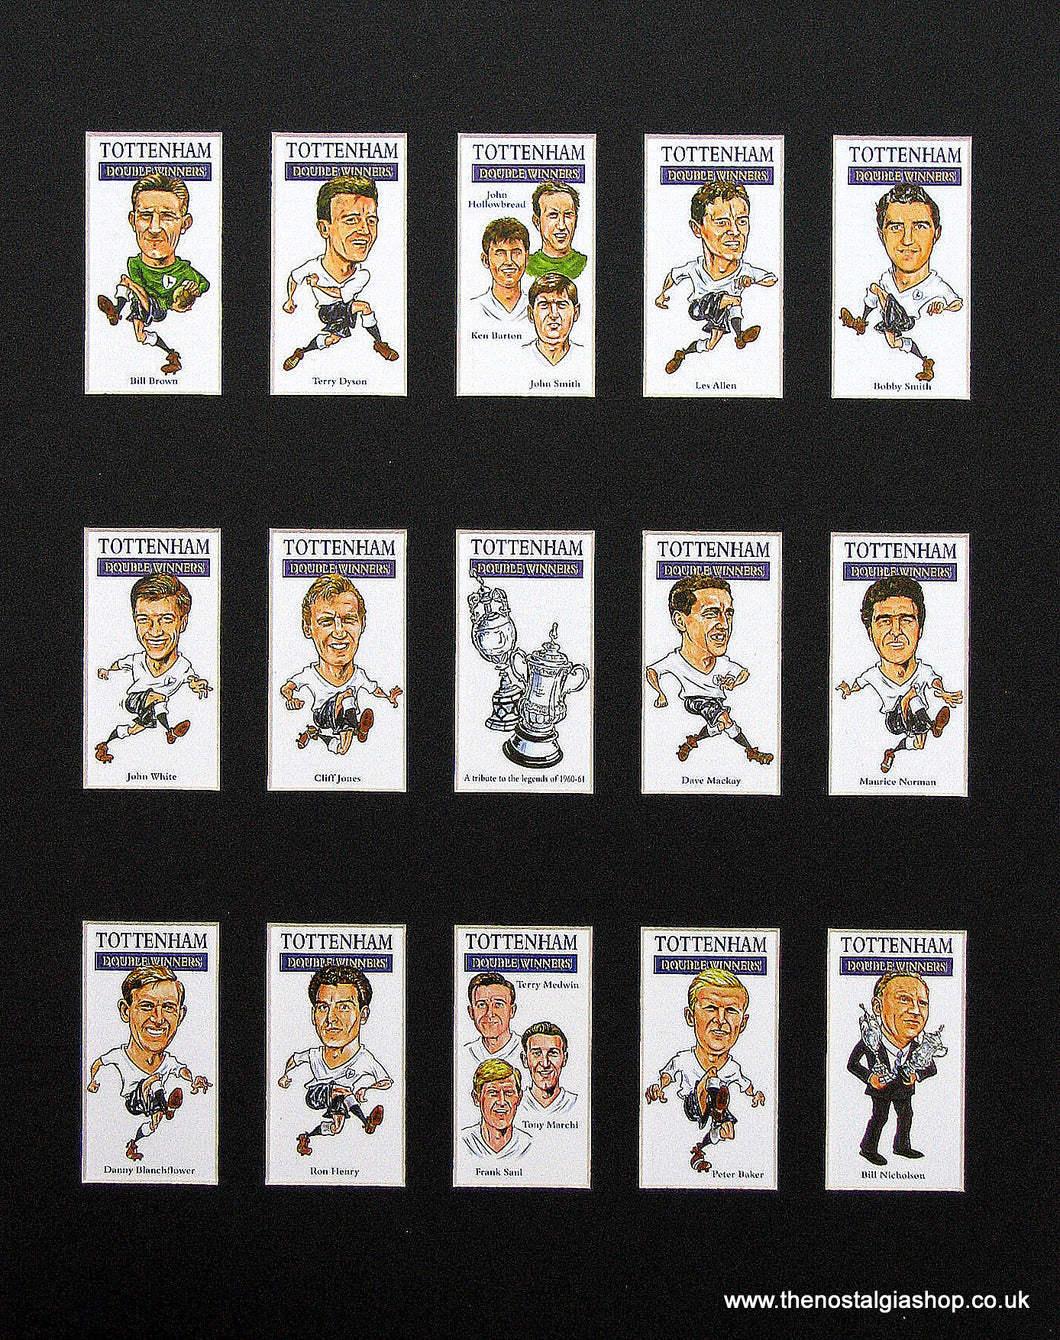 Tottenham Hotspur. Spurs Double Winners 1961. Football Card Set.